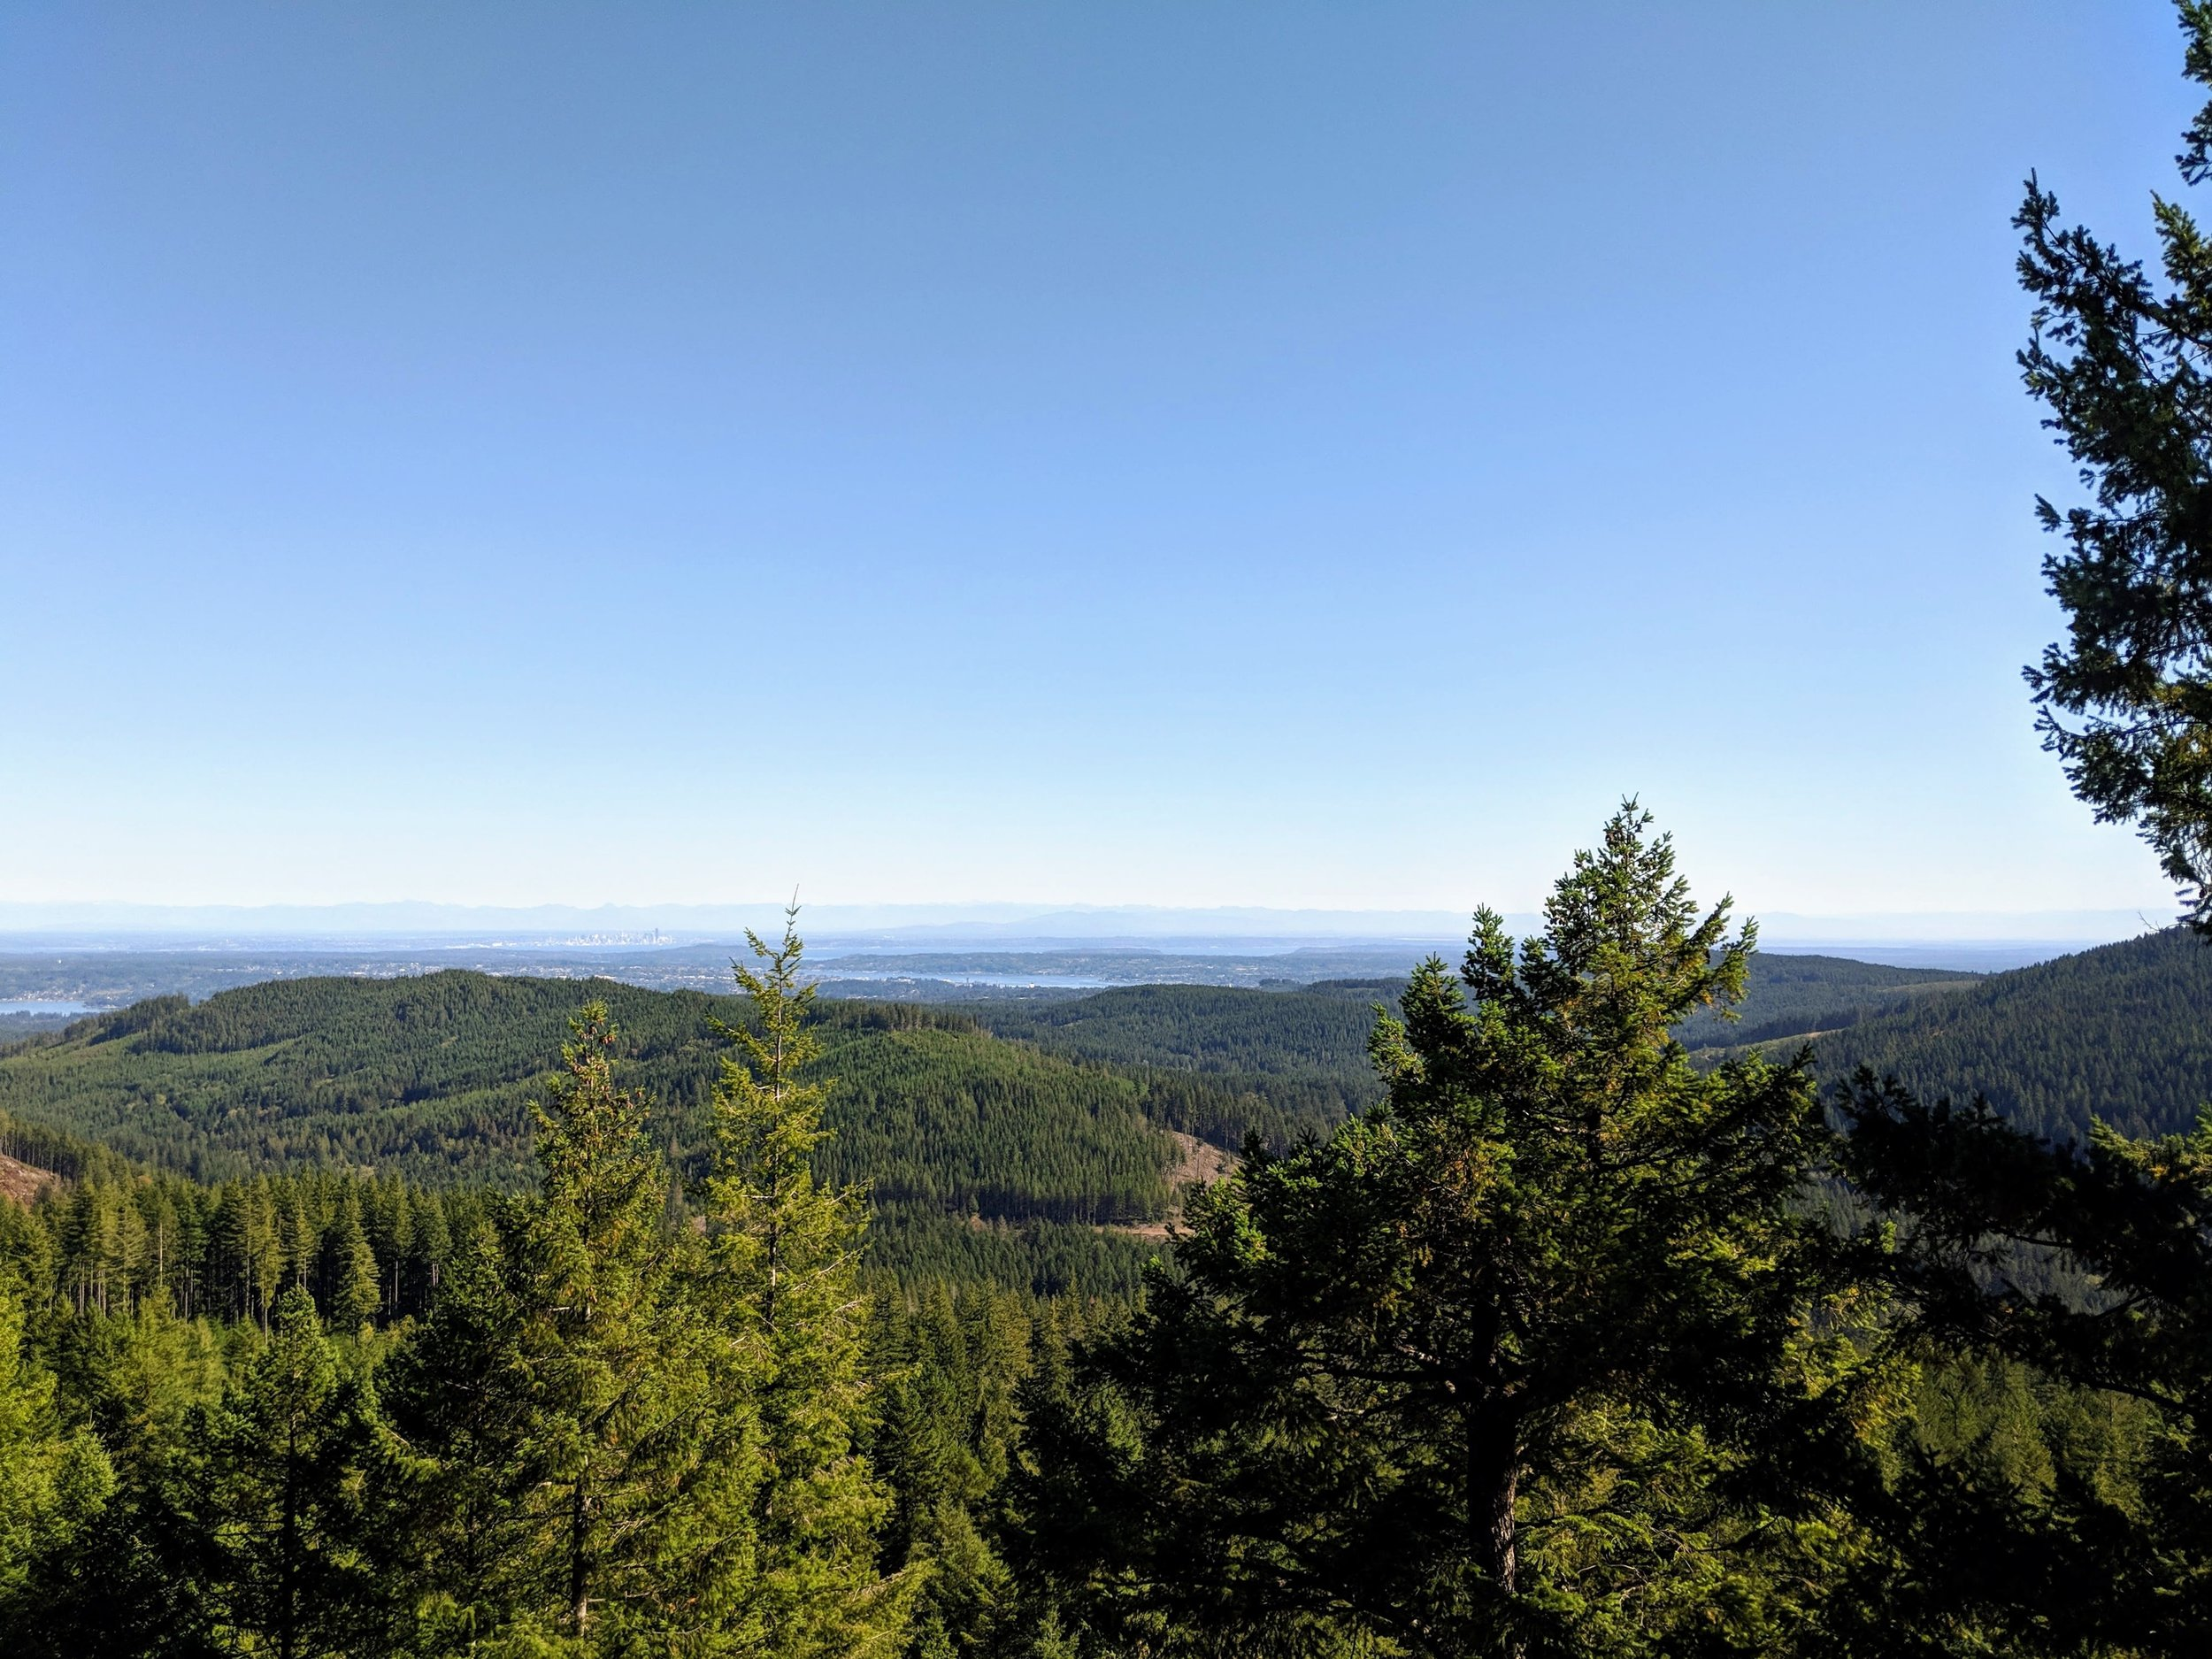 Distant views of Seattle and the Cascade Mountains from Green Mountain